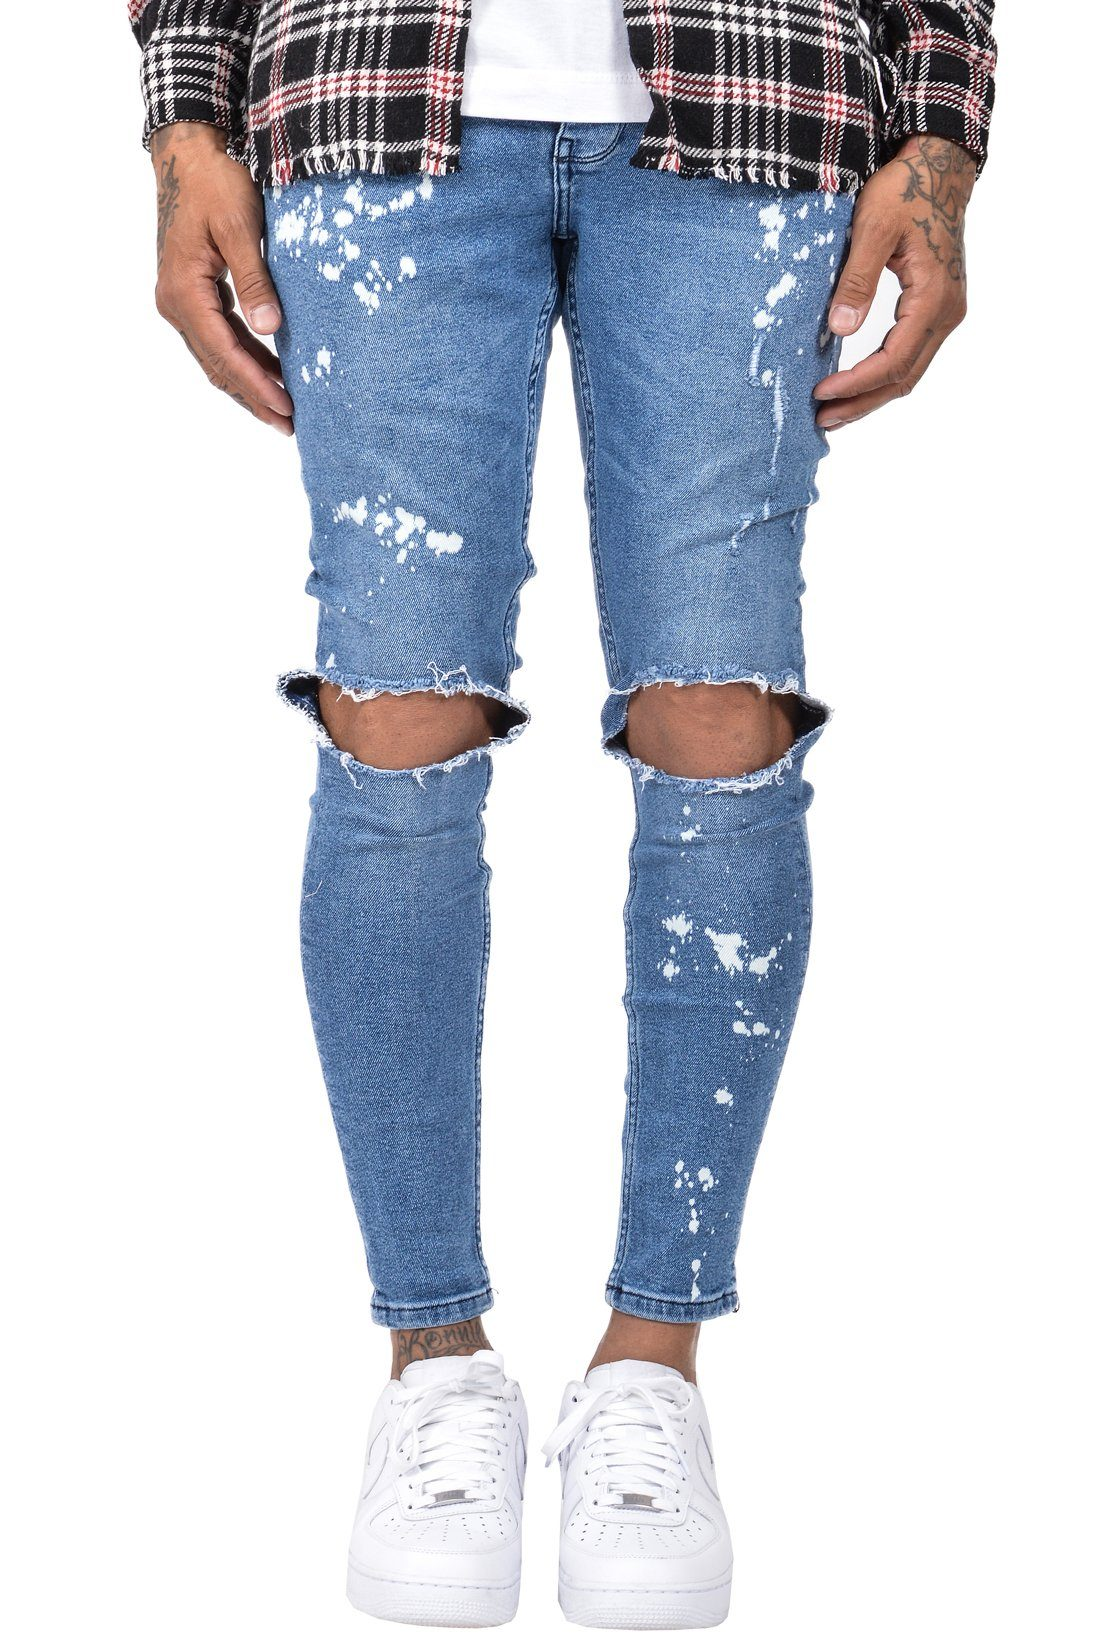 Saragossa Jeans Destroyed Mid Blue - PEGADOR - Dominate the Hype